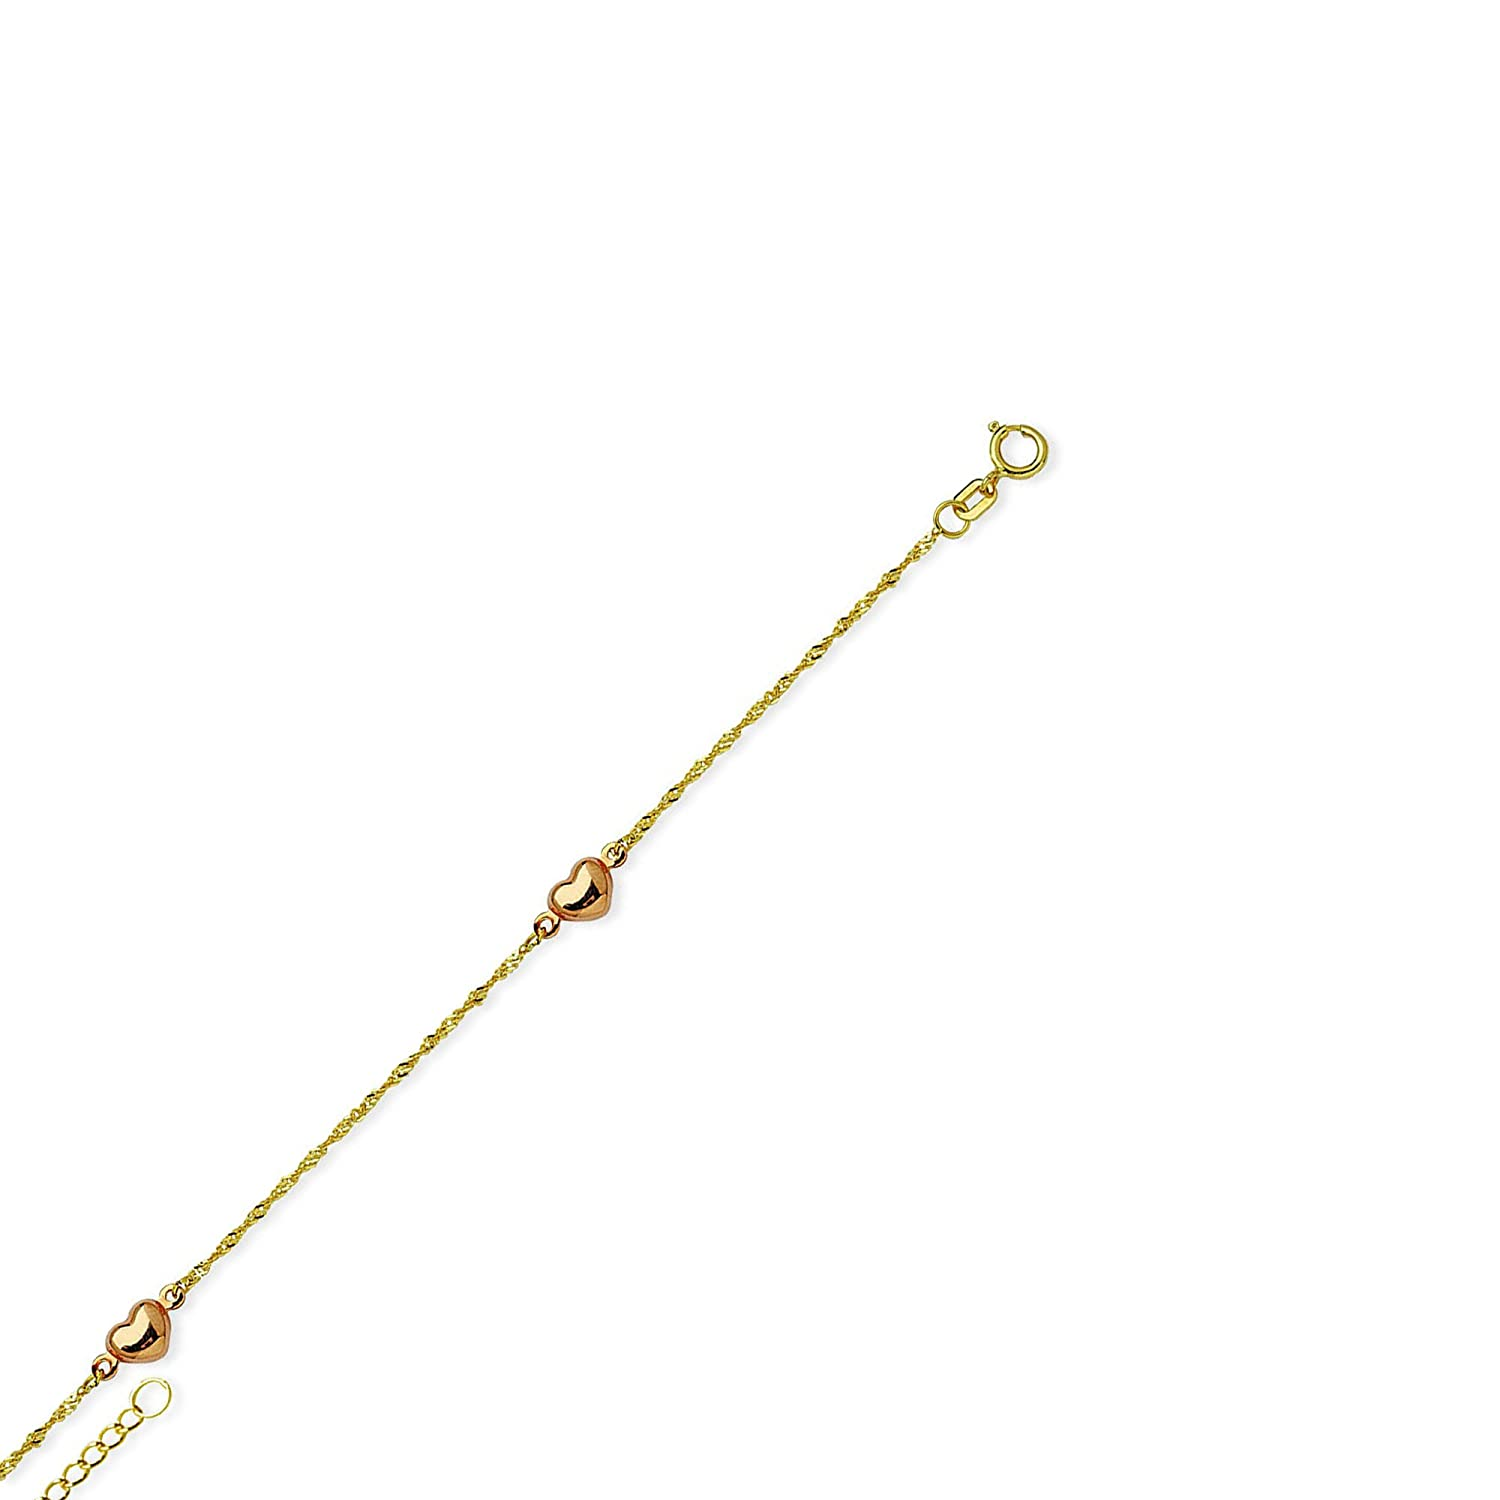 Roy Rose Jewelry 14K Yellow Gold .80mm Round Snake Chain Anklet Bracelet ~ Length 9 inches